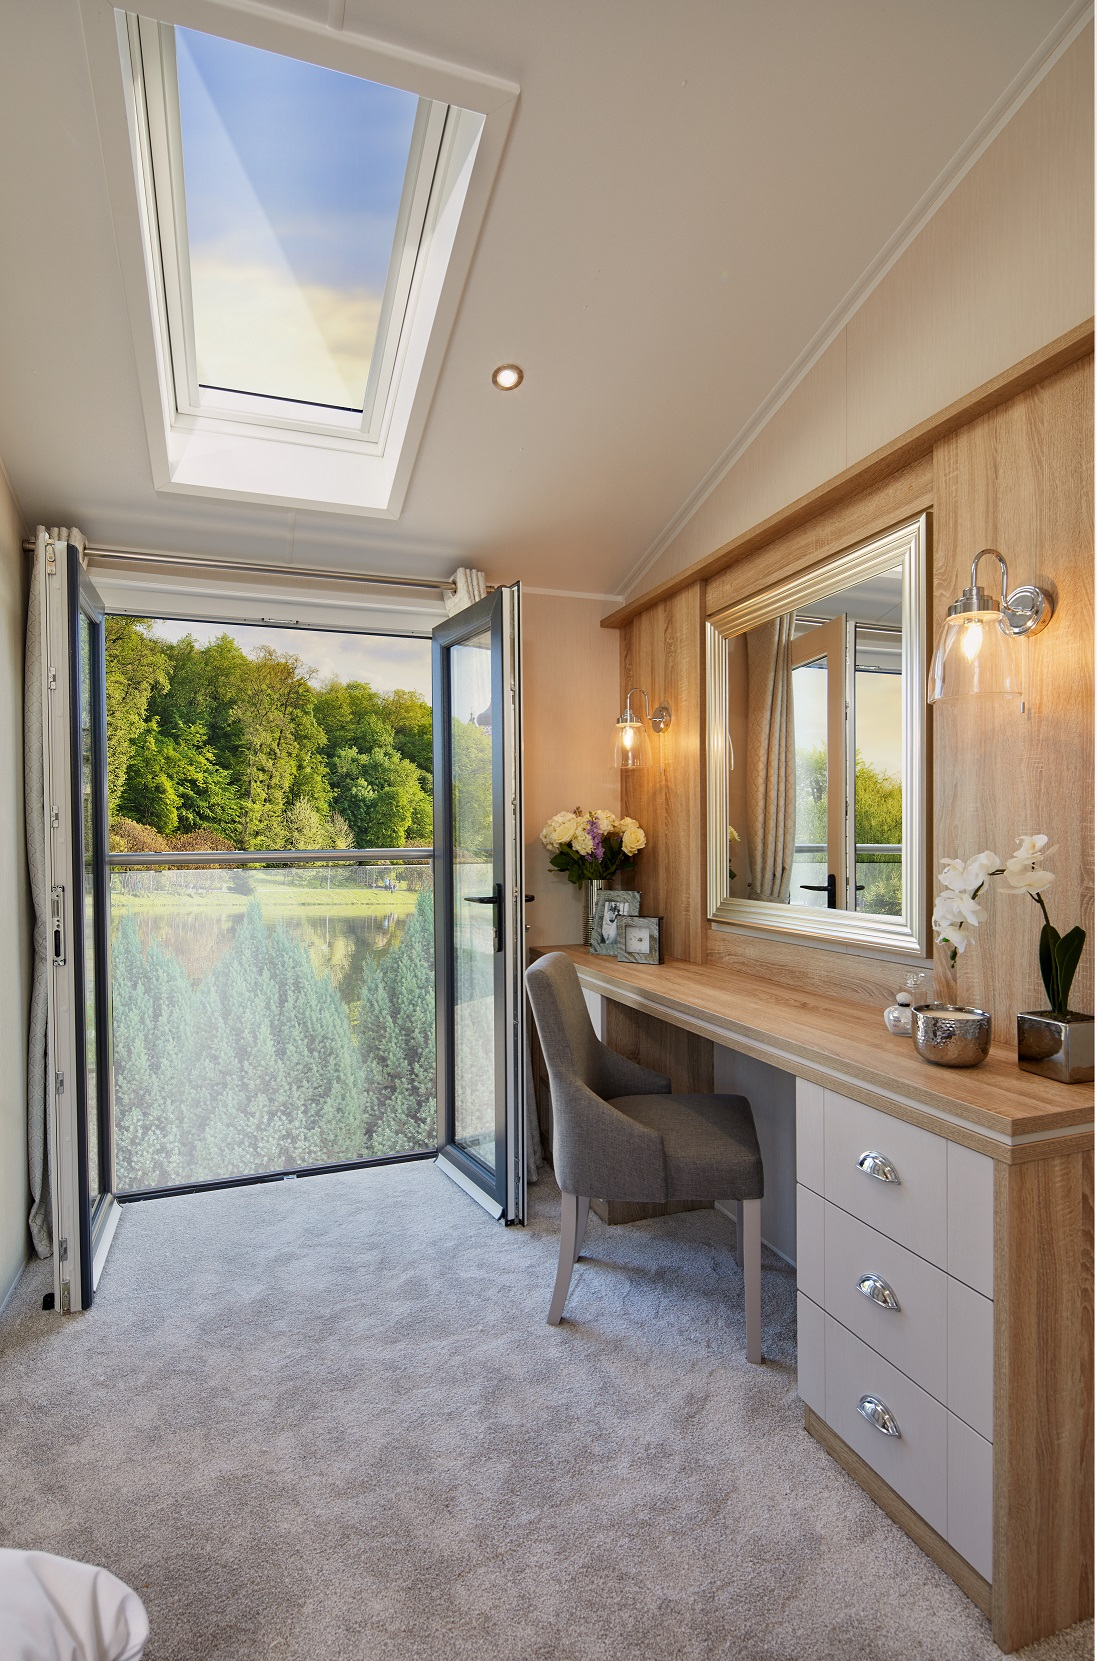 Willerby Vogue Classique: New Static Caravans and Holiday Homes for Sale, Clifton, Morpeth Large Image 5